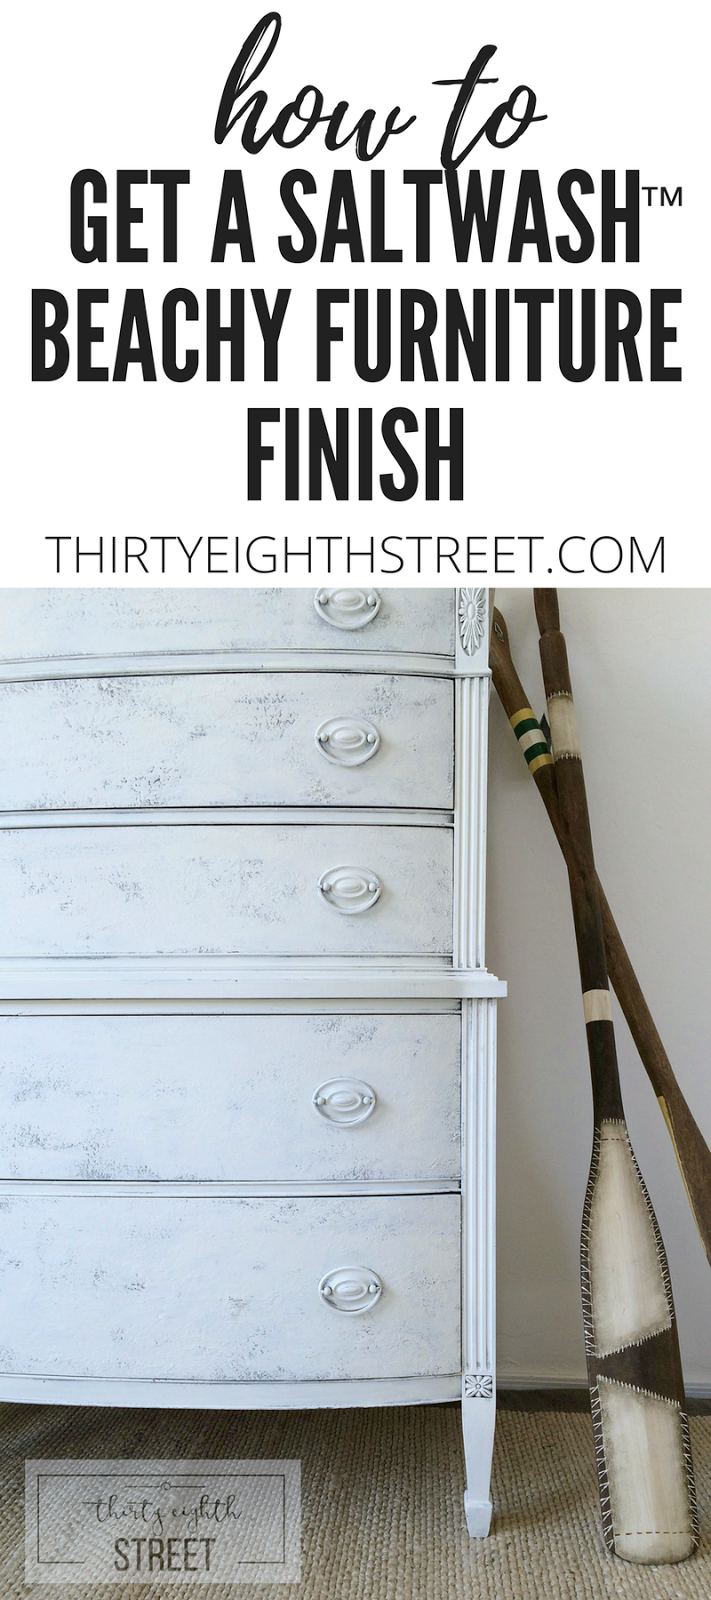 salt wash tutorial, salt washed furniture, salt washed projects, fab furniture flipping contest, furniture projects using salt wash, salt wash paint